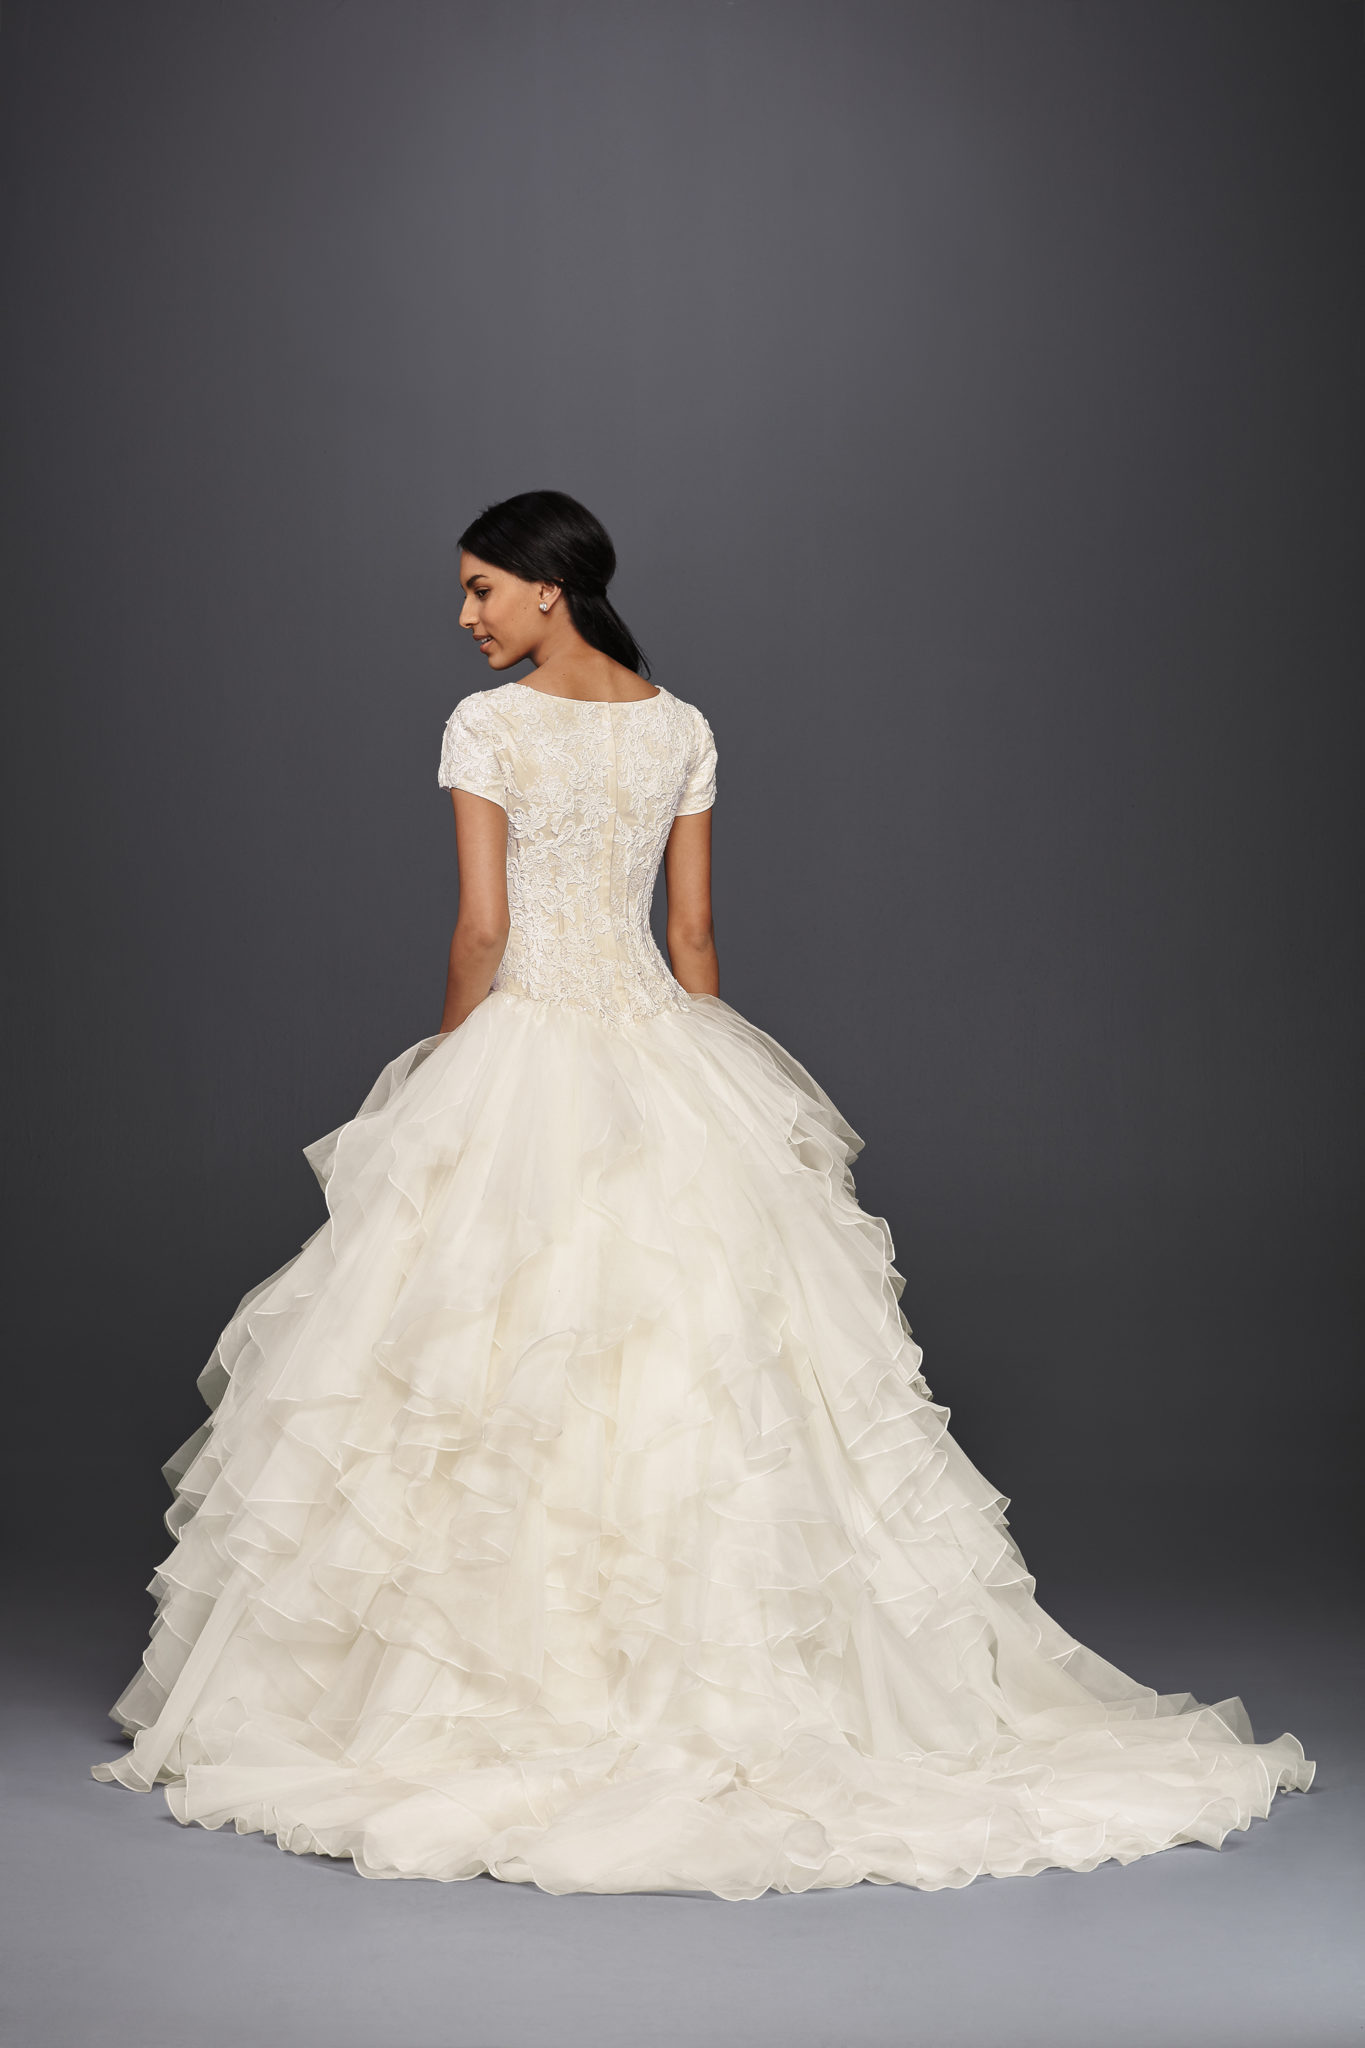 Top 3 modest wedding dress trends ft davids bridal downtown demure slcwg568ivychampolegprod4166 ombrellifo Choice Image